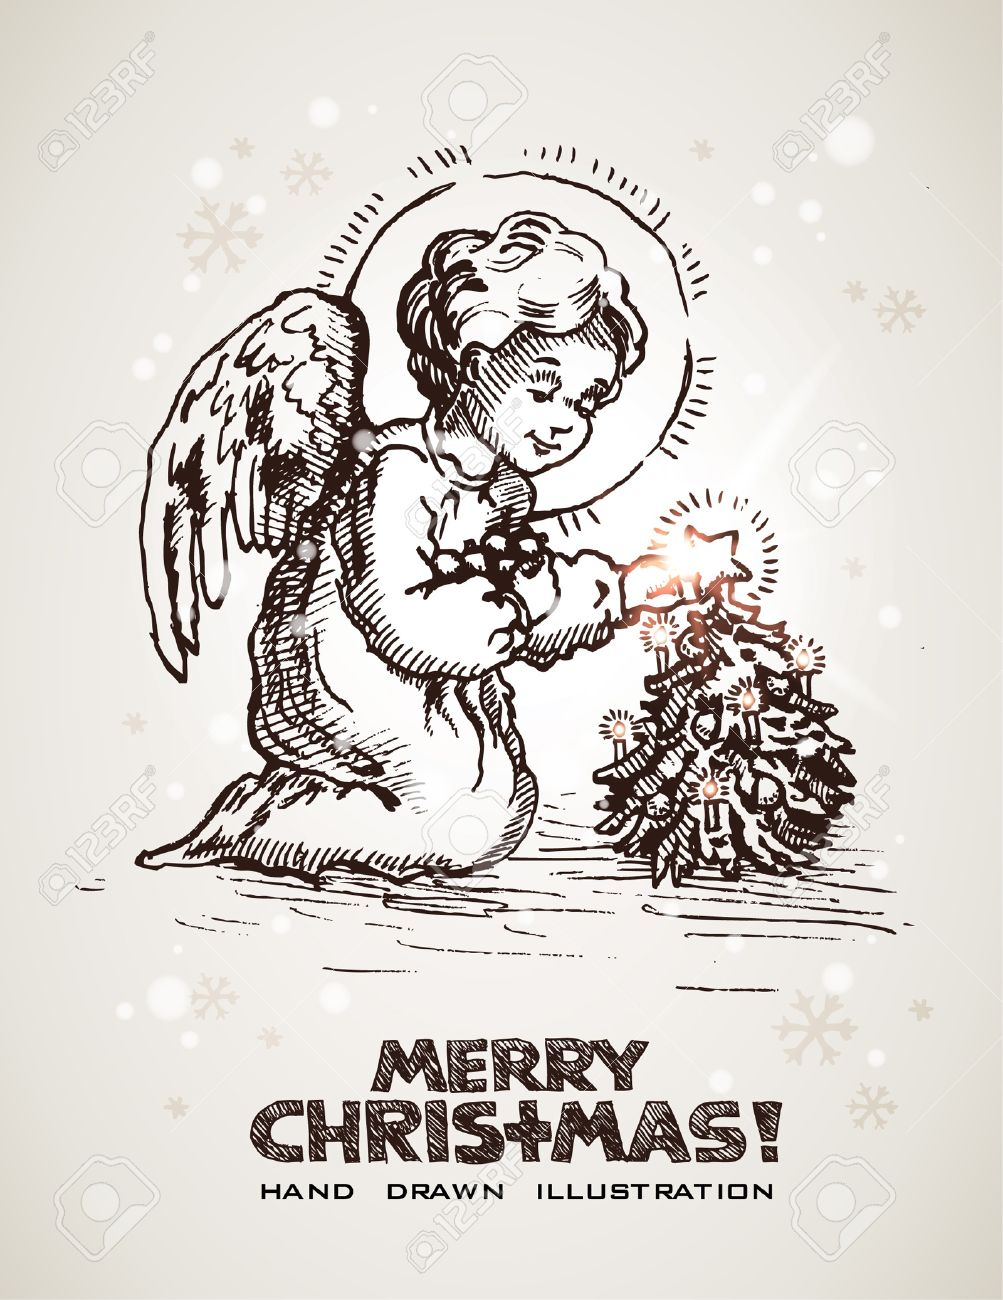 1003x1300 Hand Drawn Christmas And New Years Postcard With Cute Little